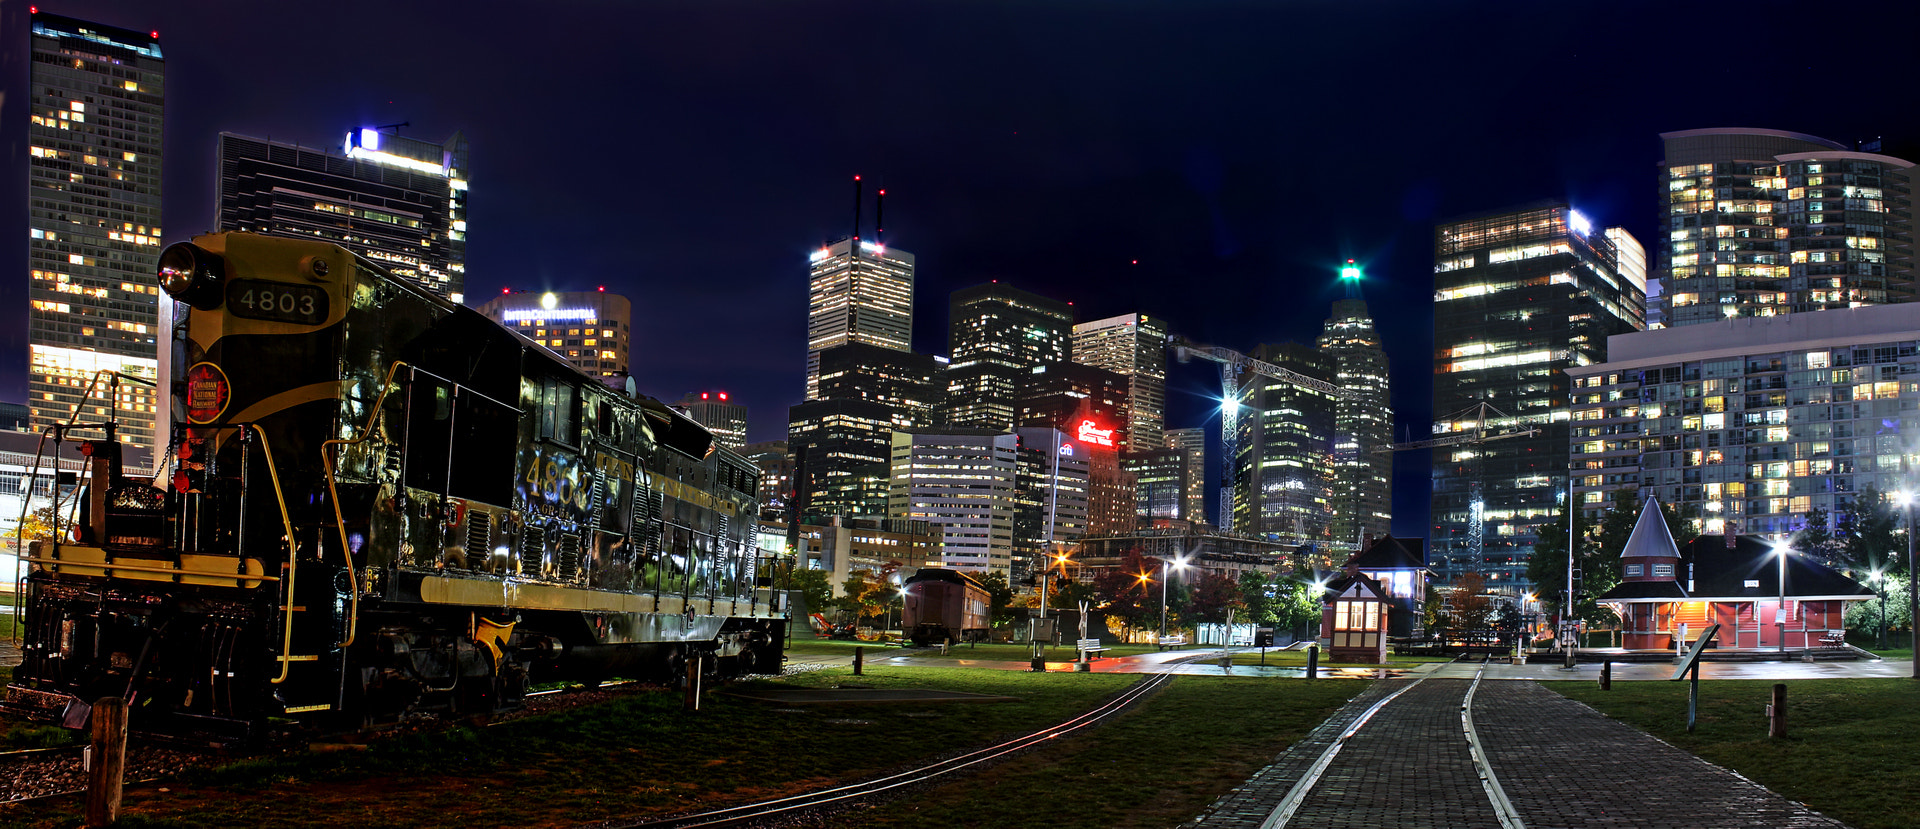 Photograph Toronto by Lee Parks on 500px